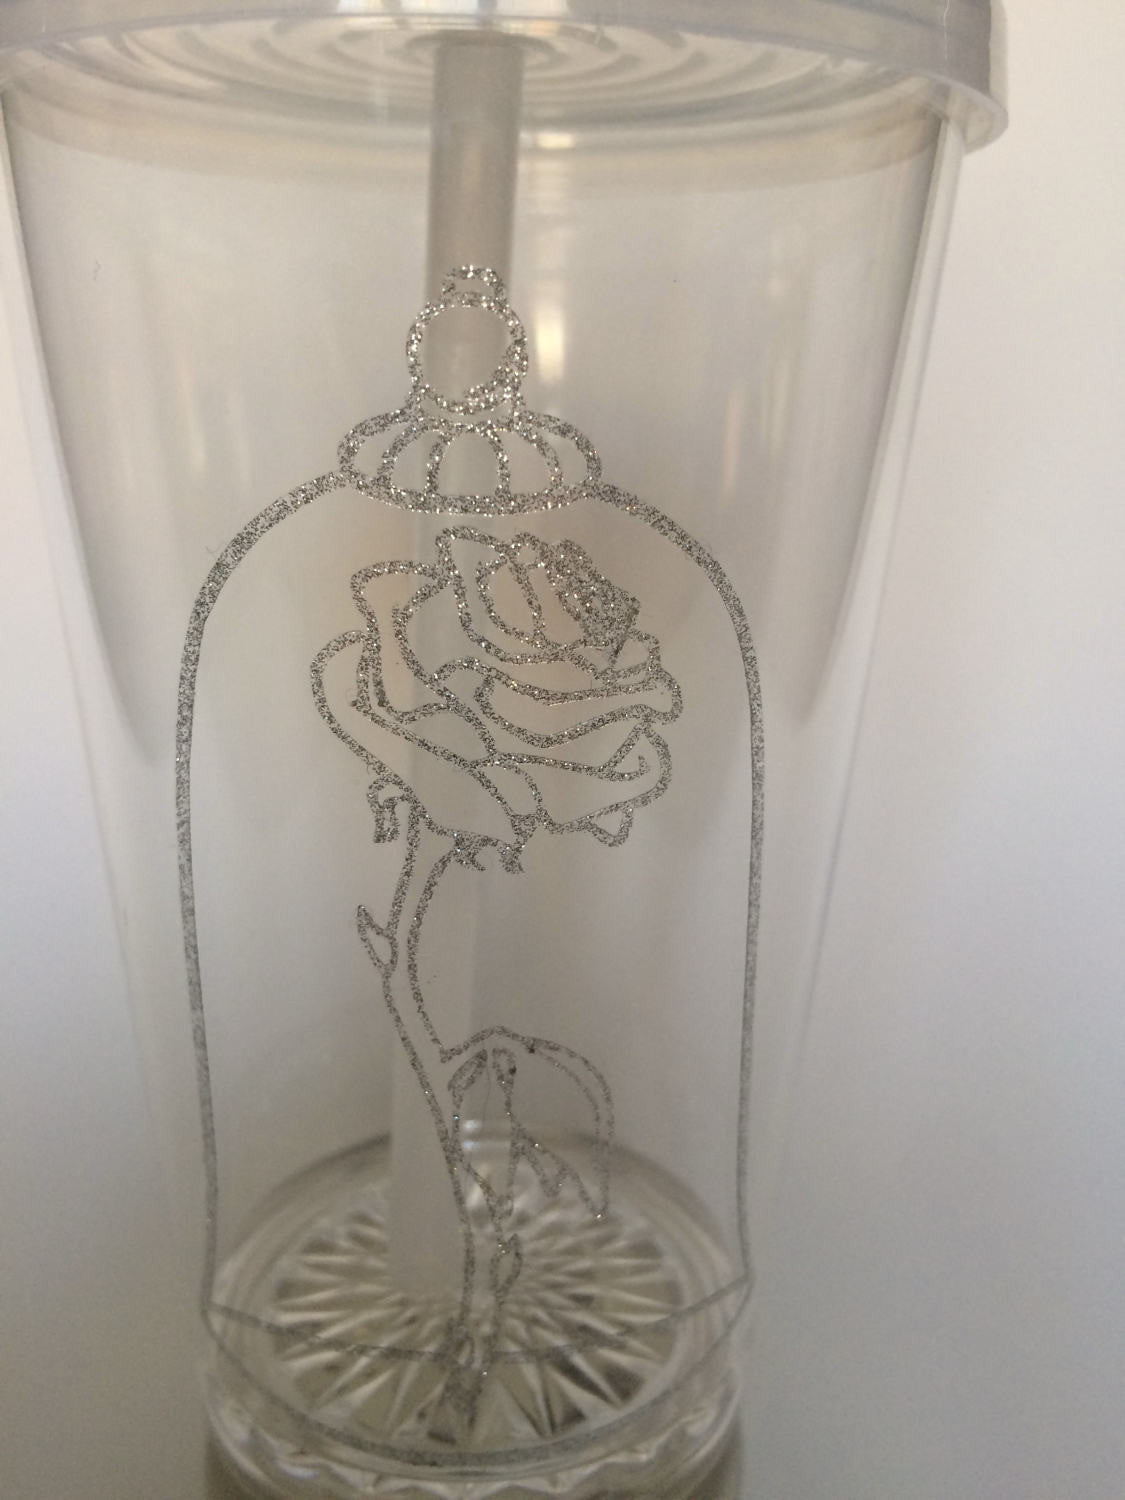 Enchanted Rose light up LED tumbler beauty and the beast inspired Disney